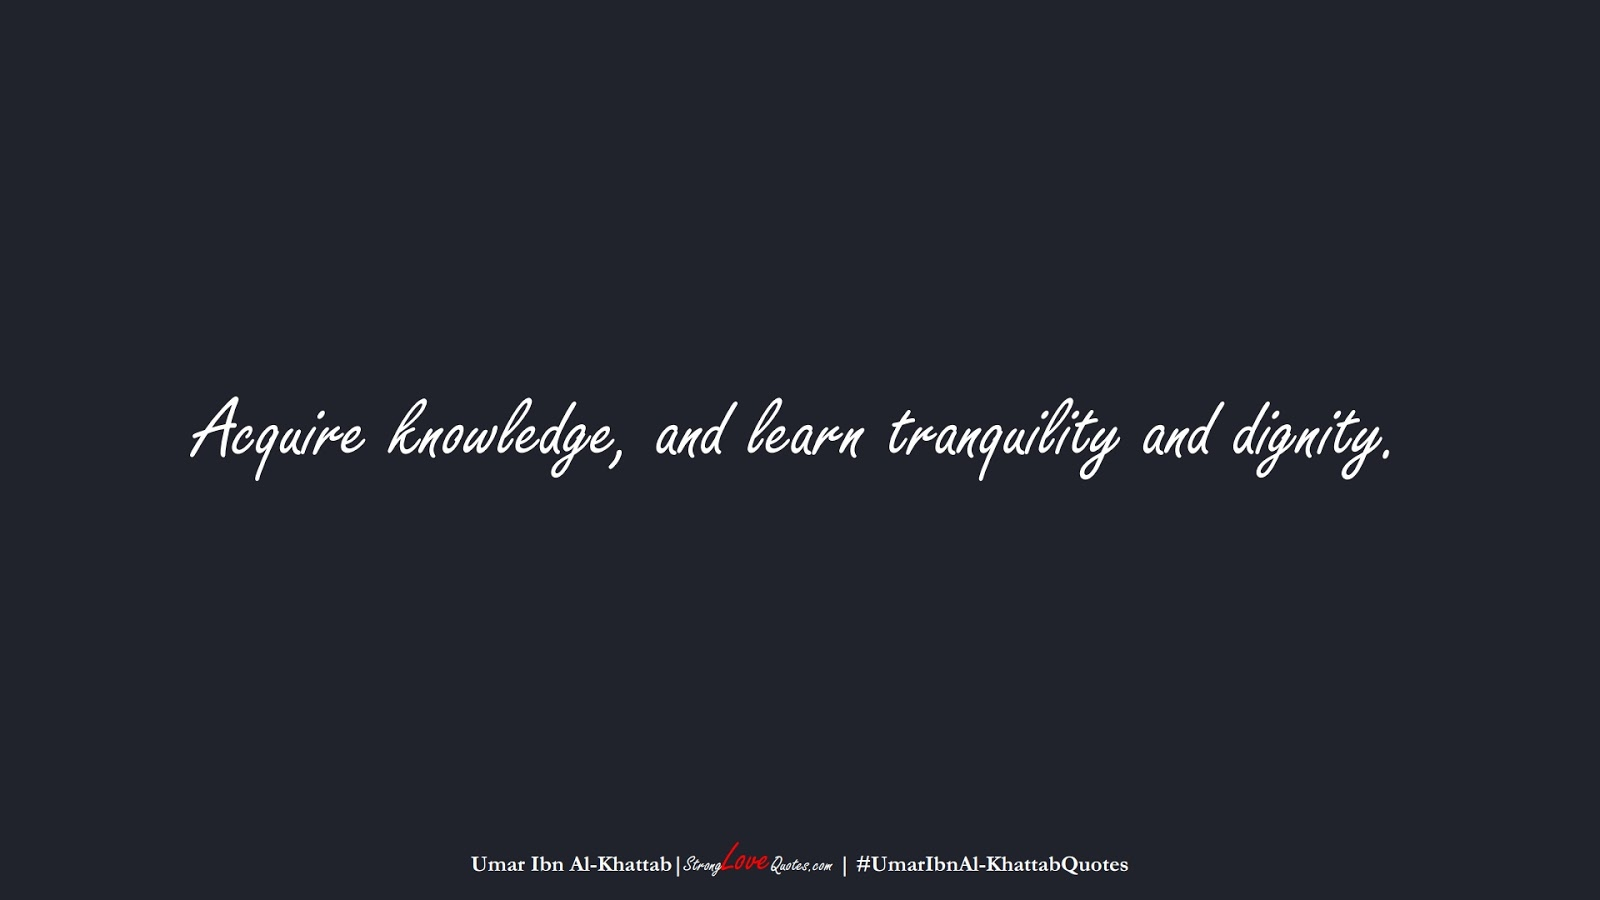 Acquire knowledge, and learn tranquility and dignity. (Umar Ibn Al-Khattab);  #UmarIbnAl-KhattabQuotes